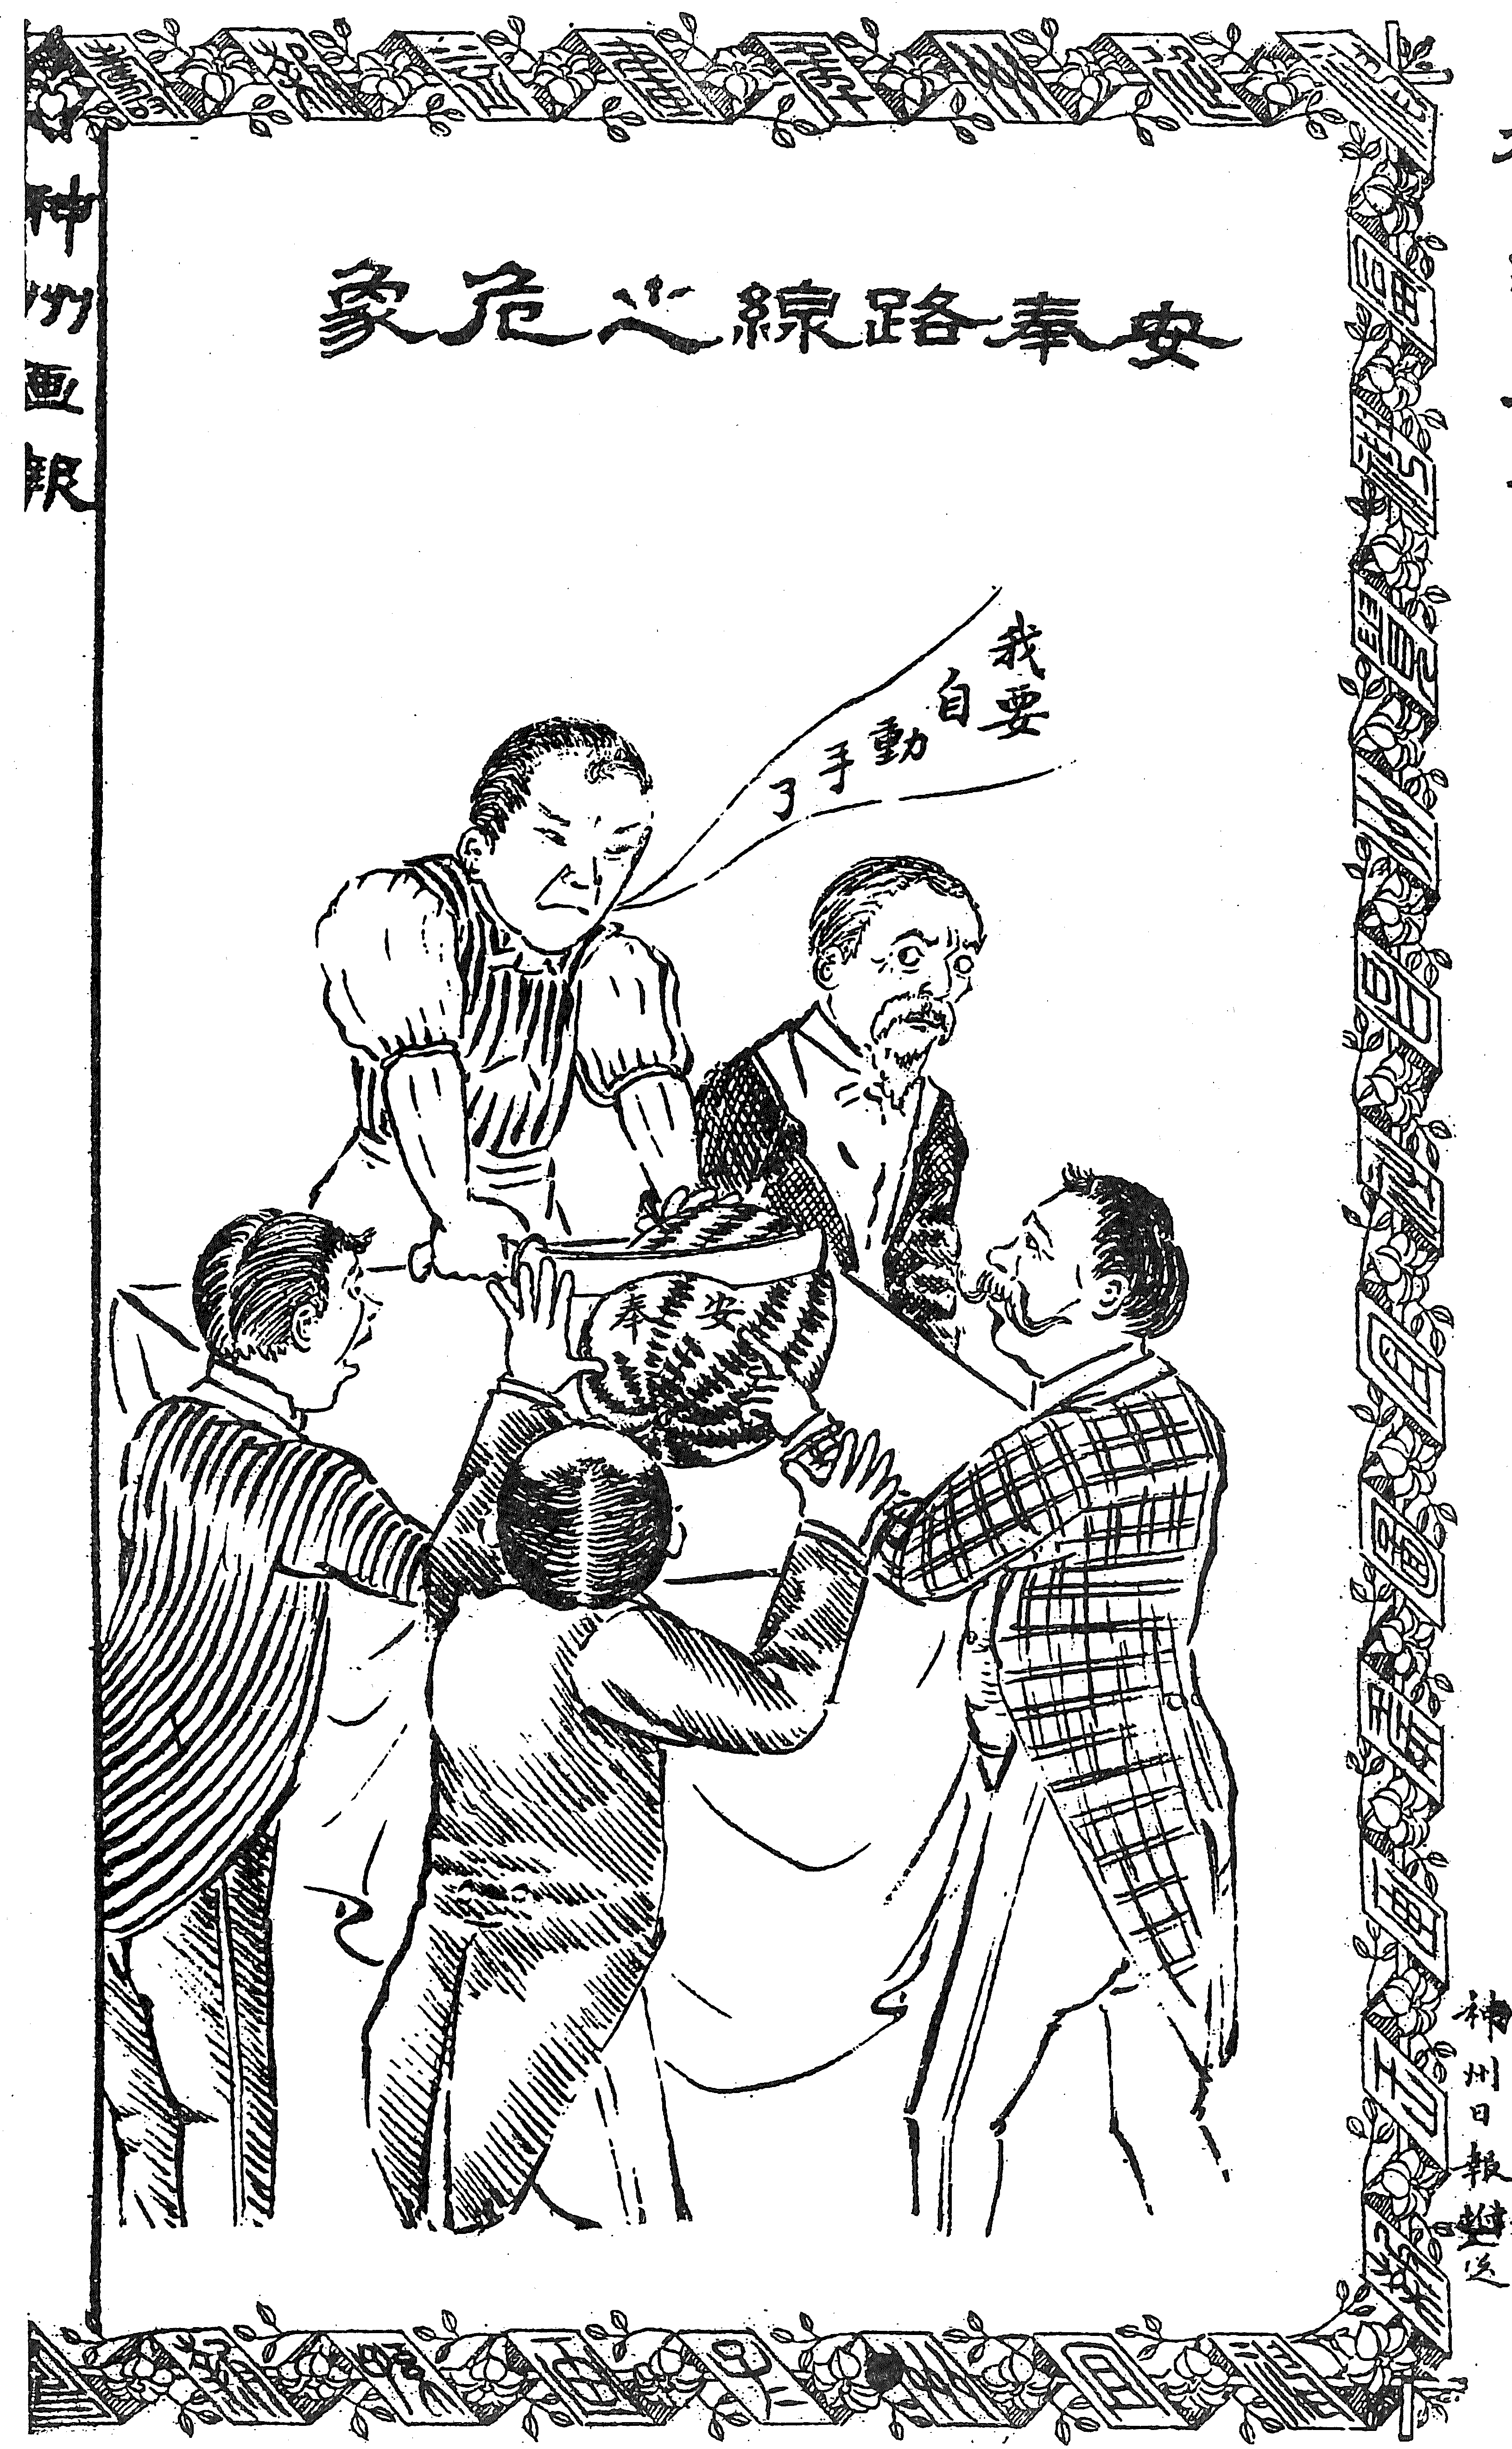 """Anfeng luxian zhi weixiang"" 安丰路綫之危象 [Image of the danger of the An Feng line]"